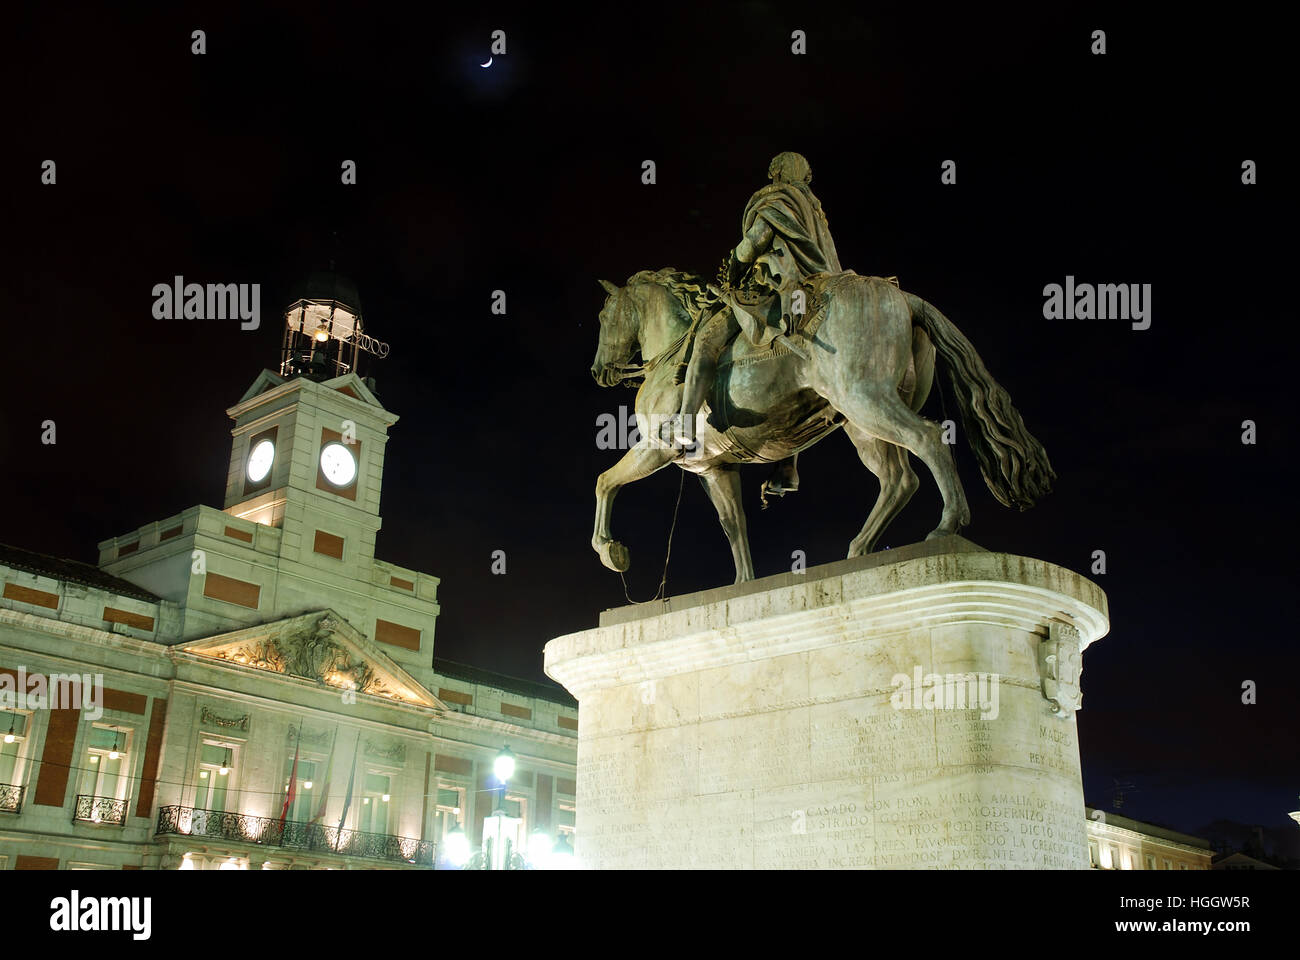 Carlos III statue and clock tower, night view. Puerta del Sol, Madrid, Spain. Stock Photo